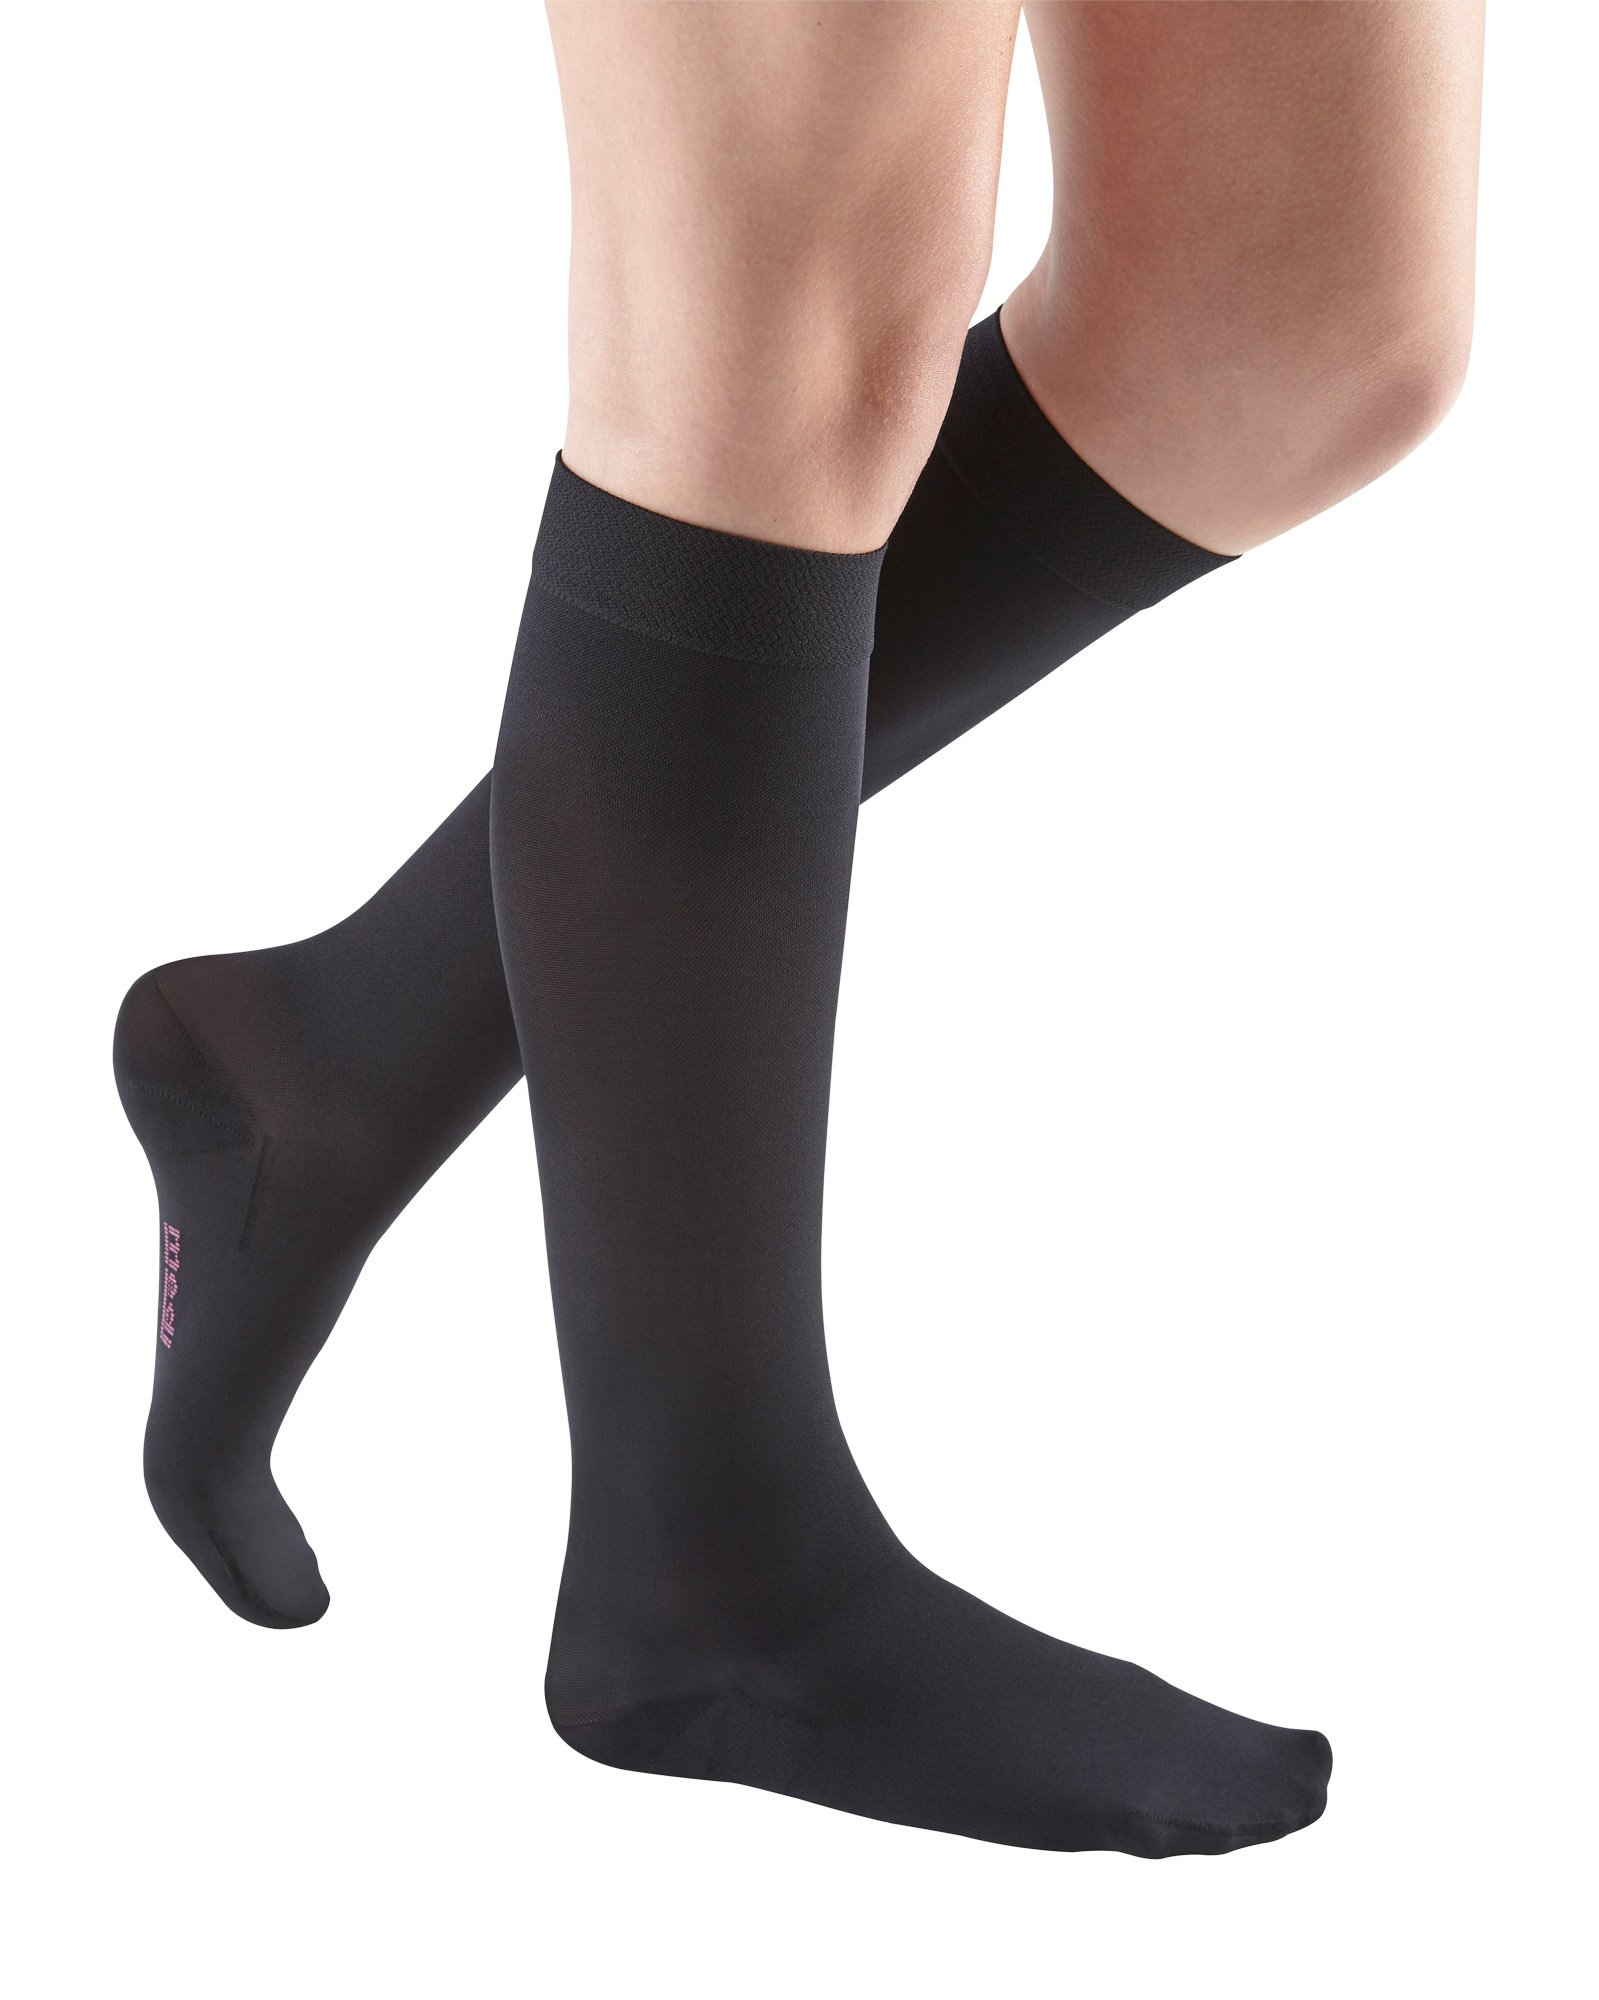 fce1037b1e mediven Comfort, 15-20 mmHg, Calf High Compression Stockings, Closed Toe